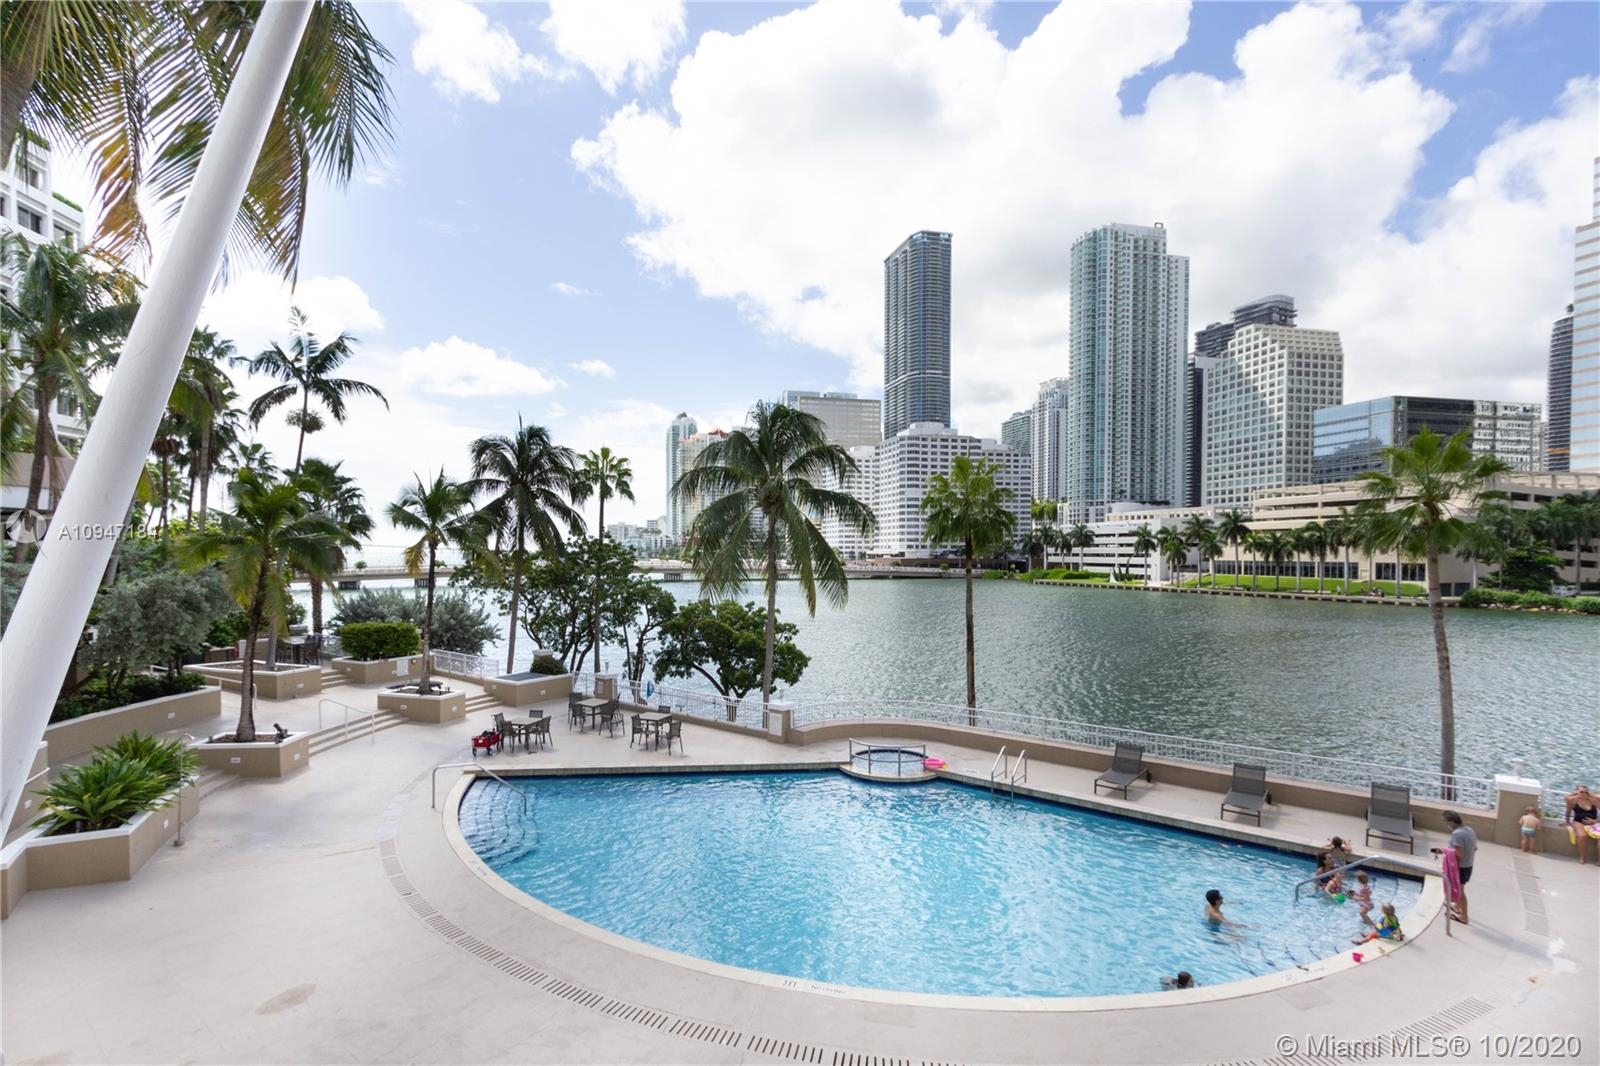 Courvoisier Courts #708 - 701 Brickell Key Blvd #708, Miami, FL 33131